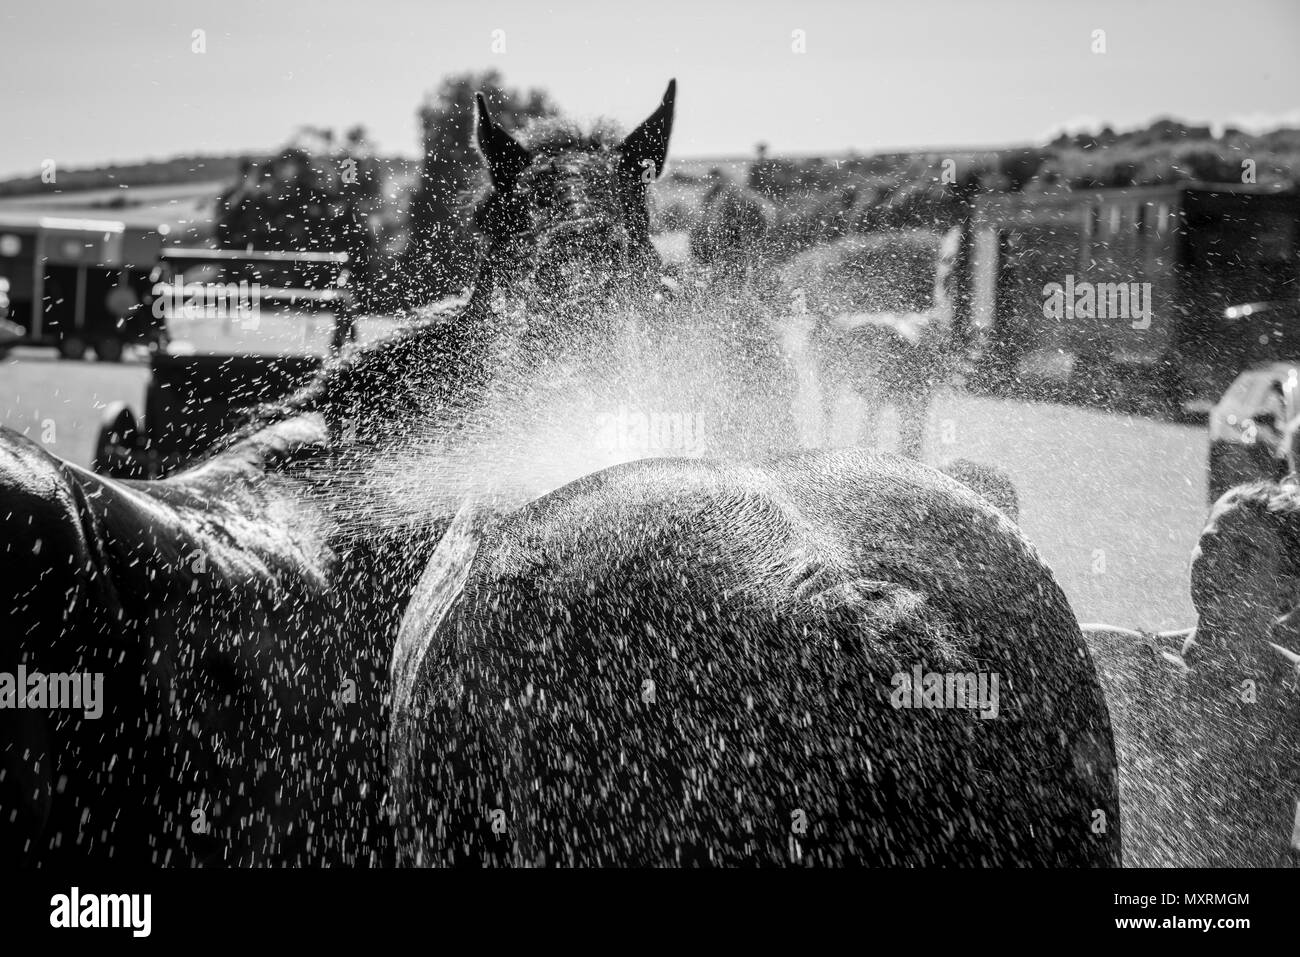 A large horse is cooled down with water on a hot day after performing at the Weald and Downland Living Museum in Singleton, West Sussex, UK. - Stock Image